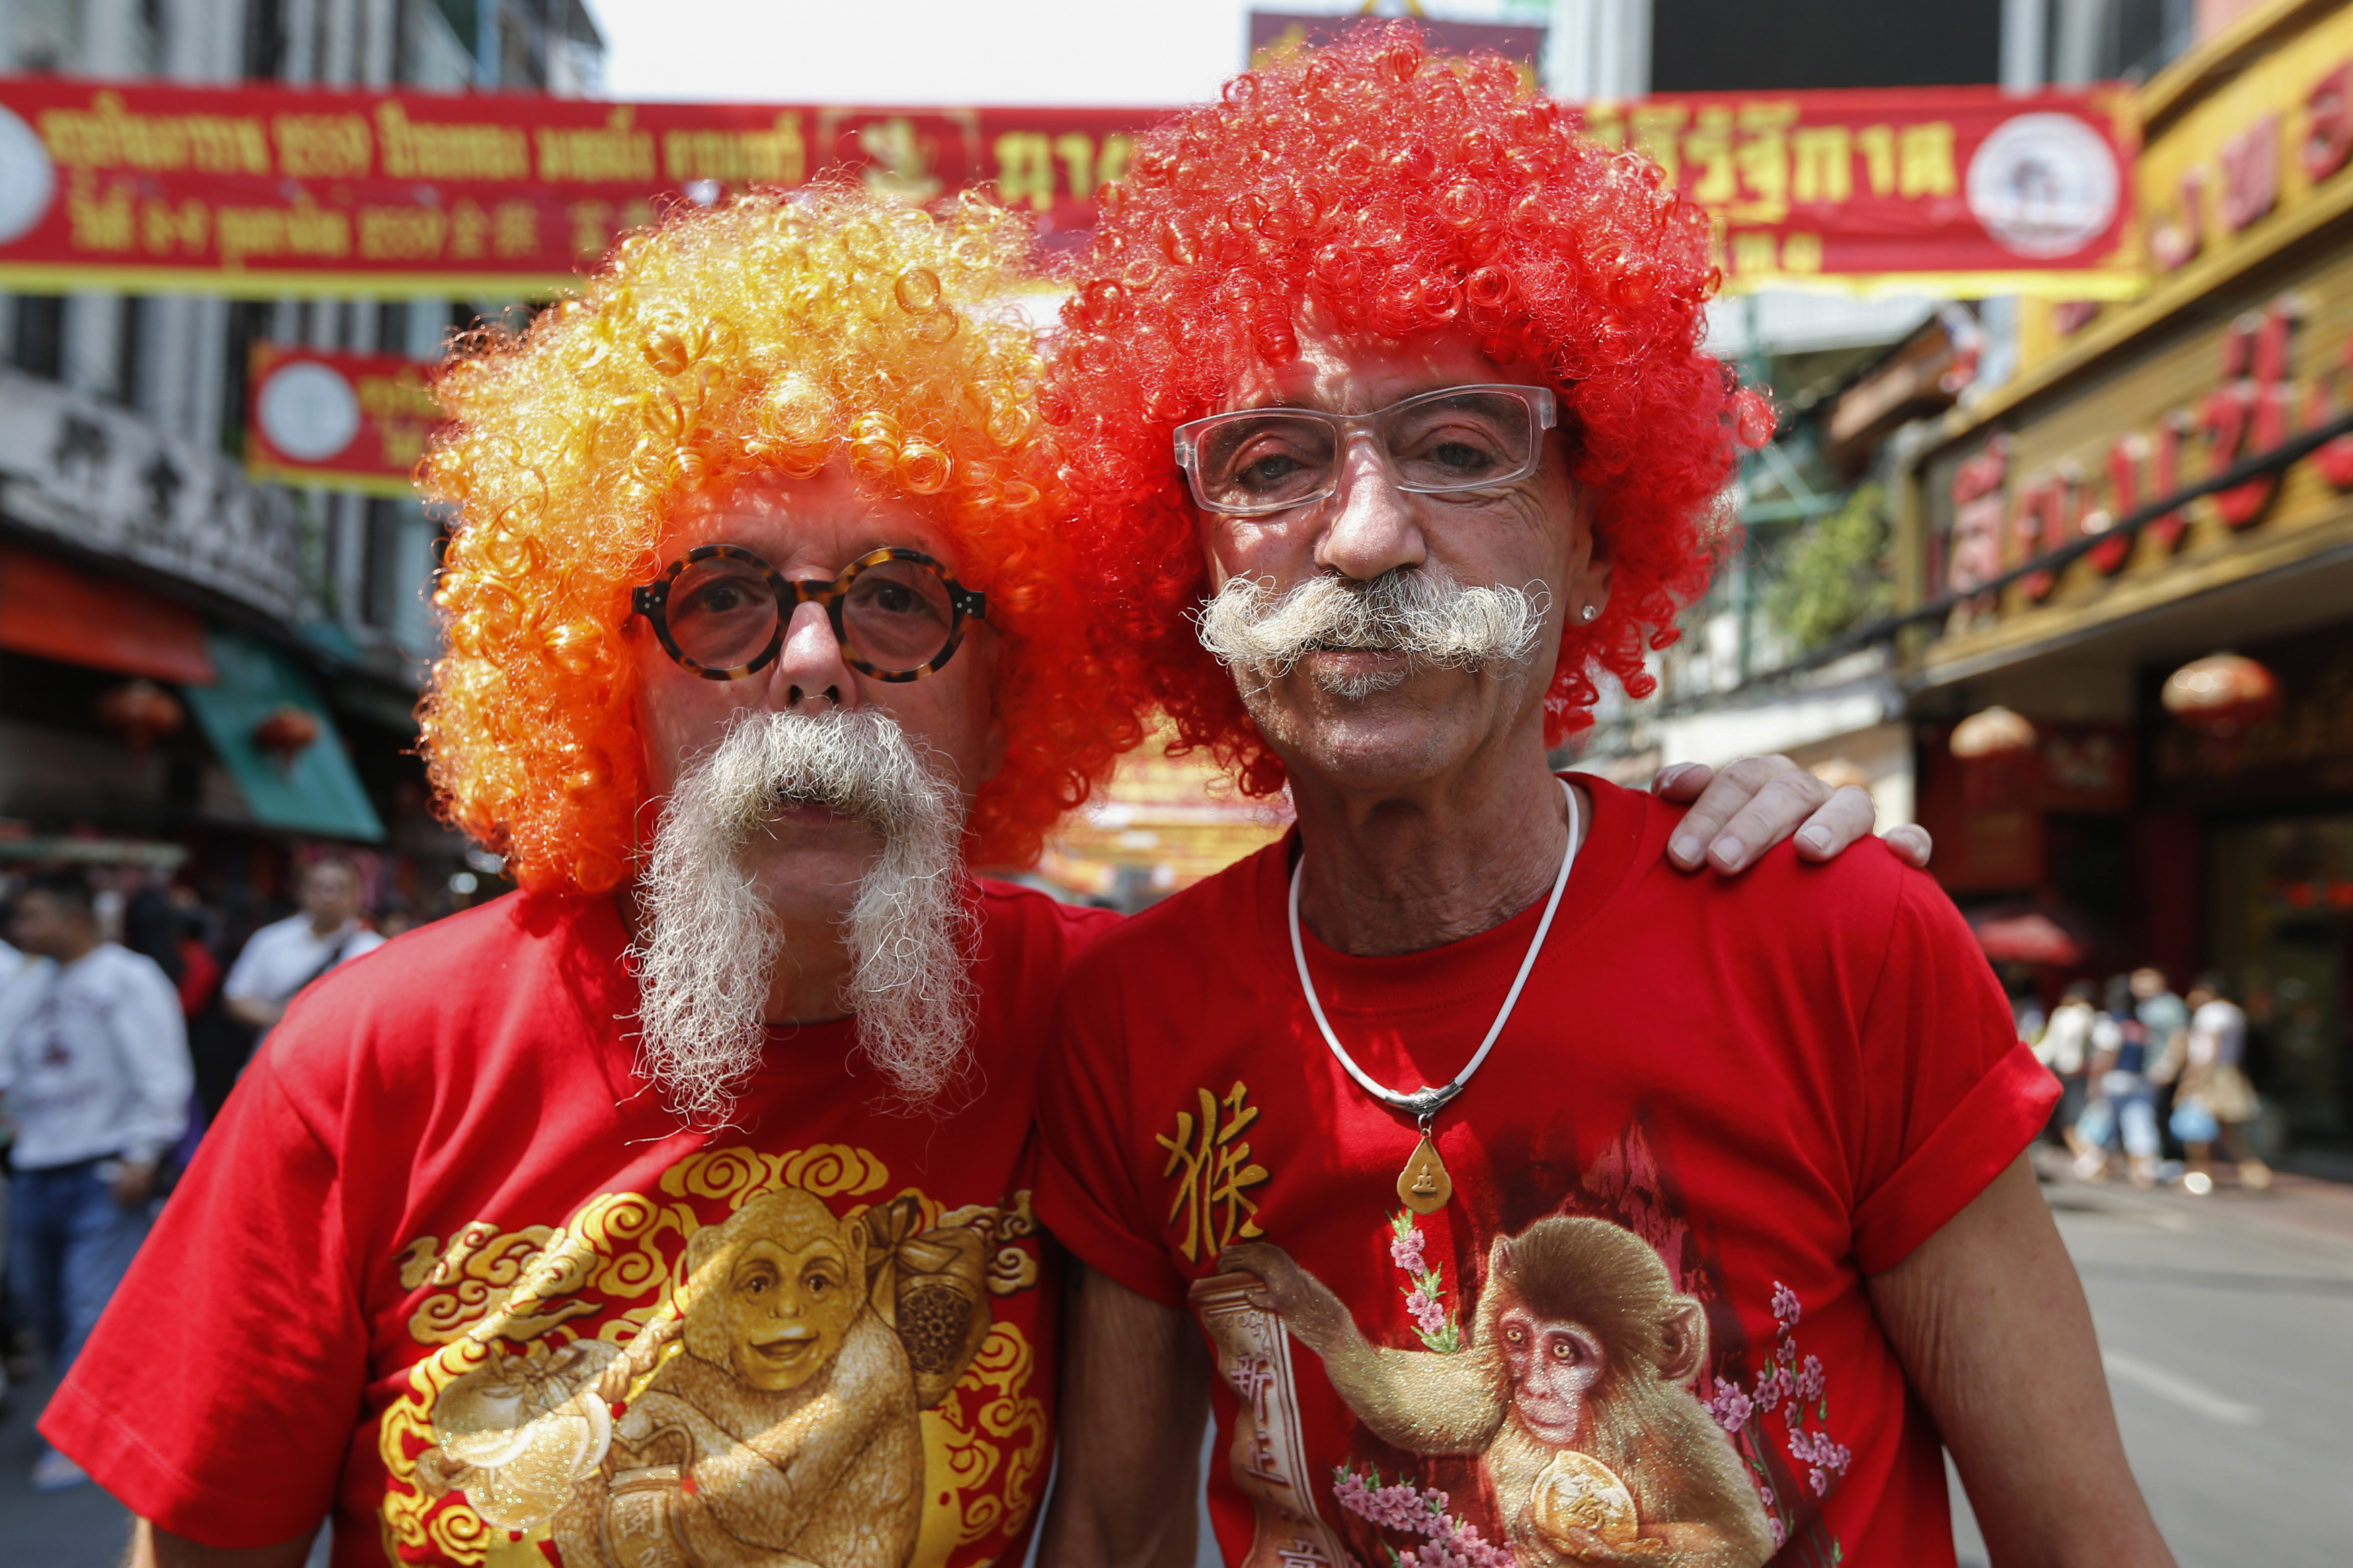 Tourists wear wigs and monkey t-shirts during the celebration of the Chinese New Year in Chinatown in Bangkok, Thailand February 8, 2016.